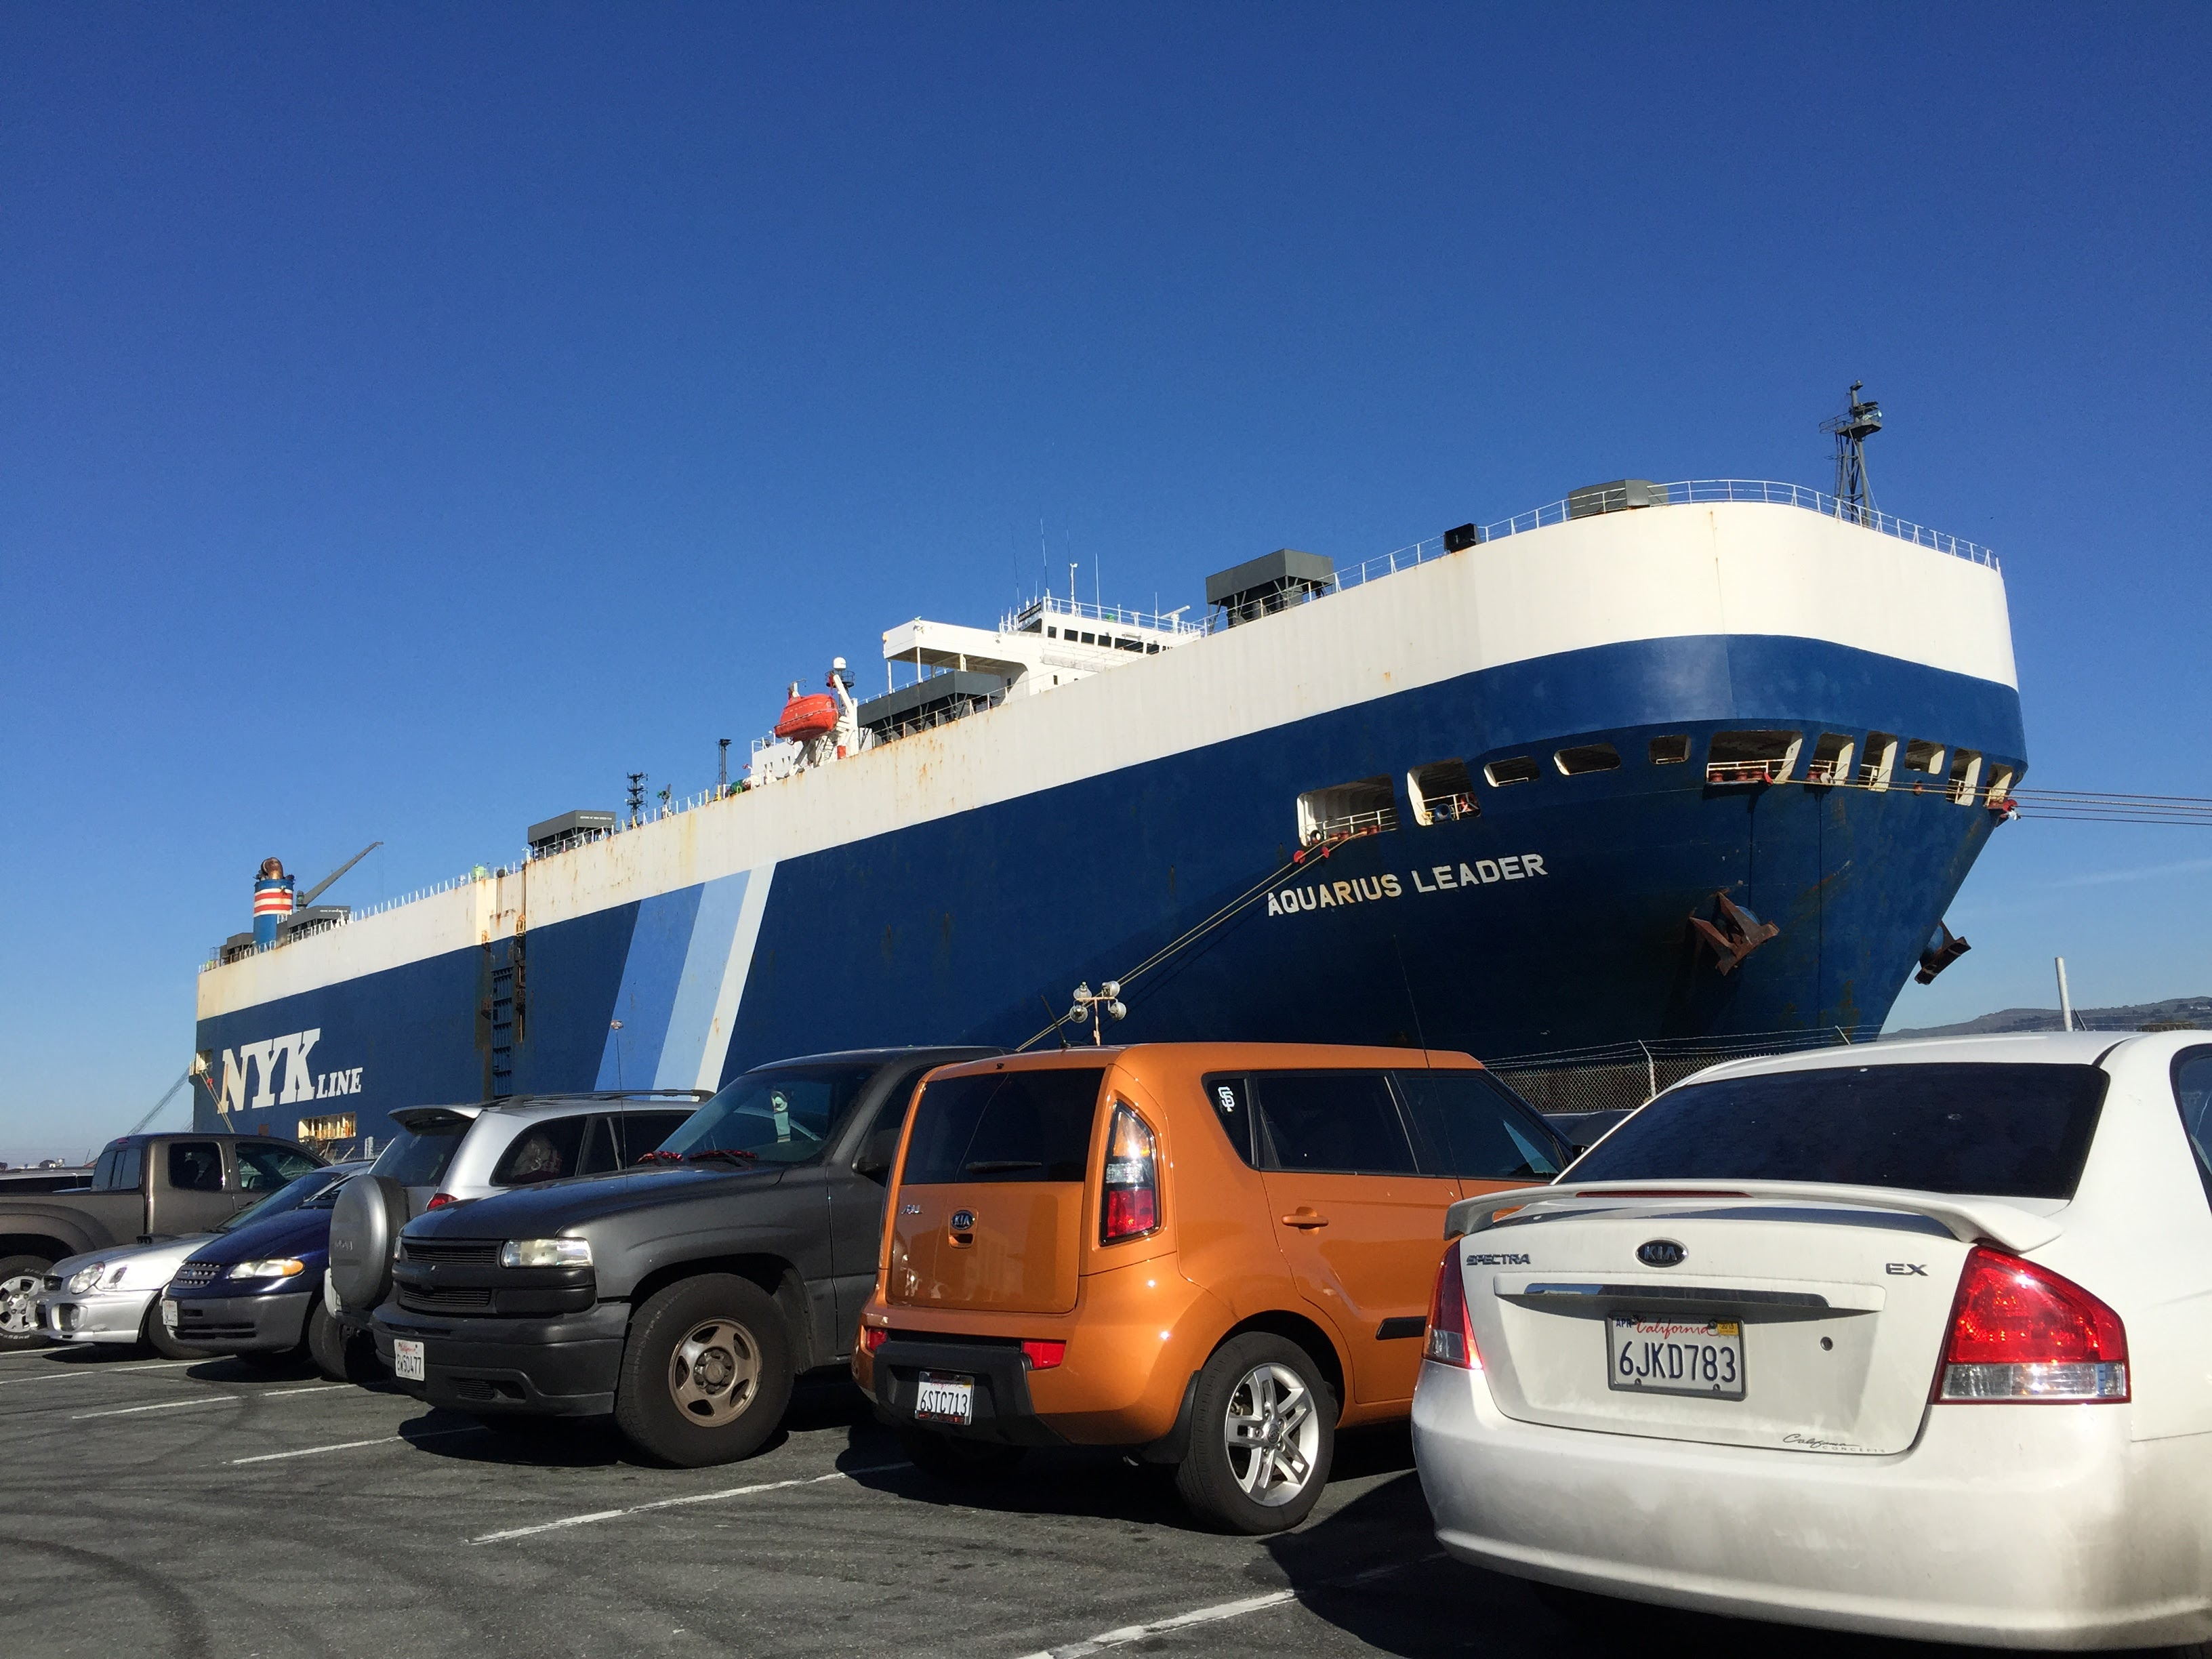 Cars being shipped overseas on a RoRo ship